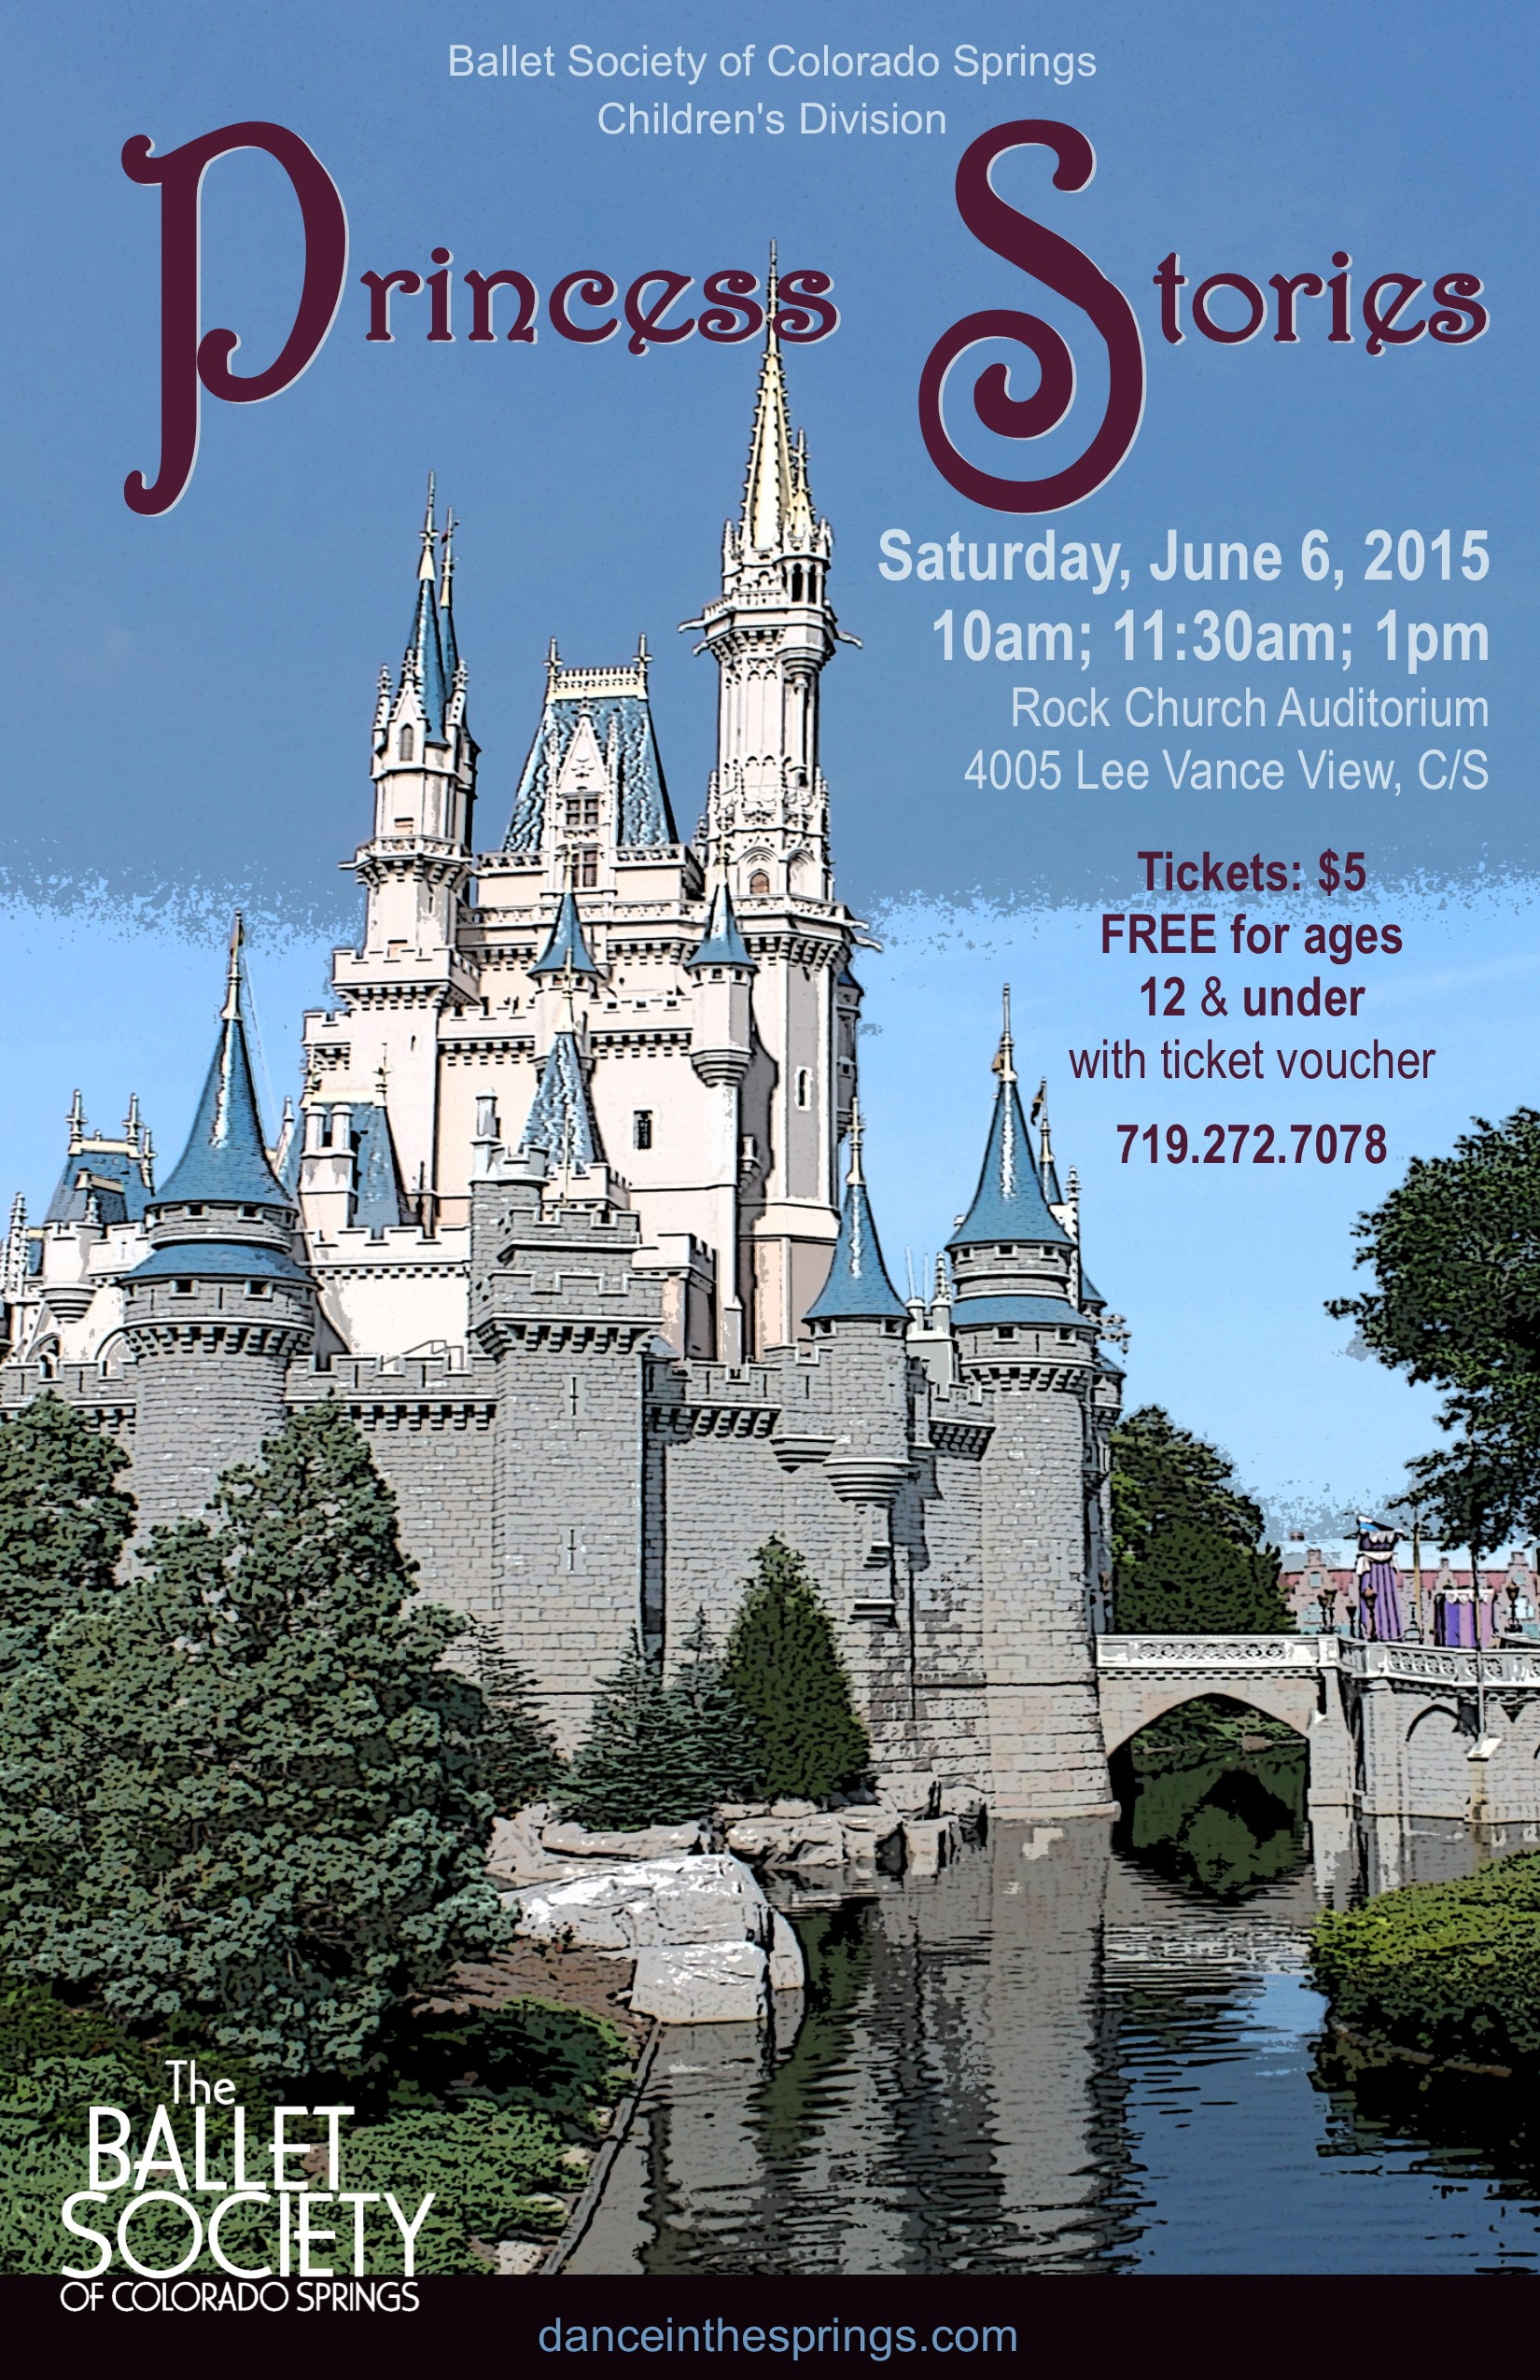 2015-6-6 Children's Division Princess Stories 2015 poster